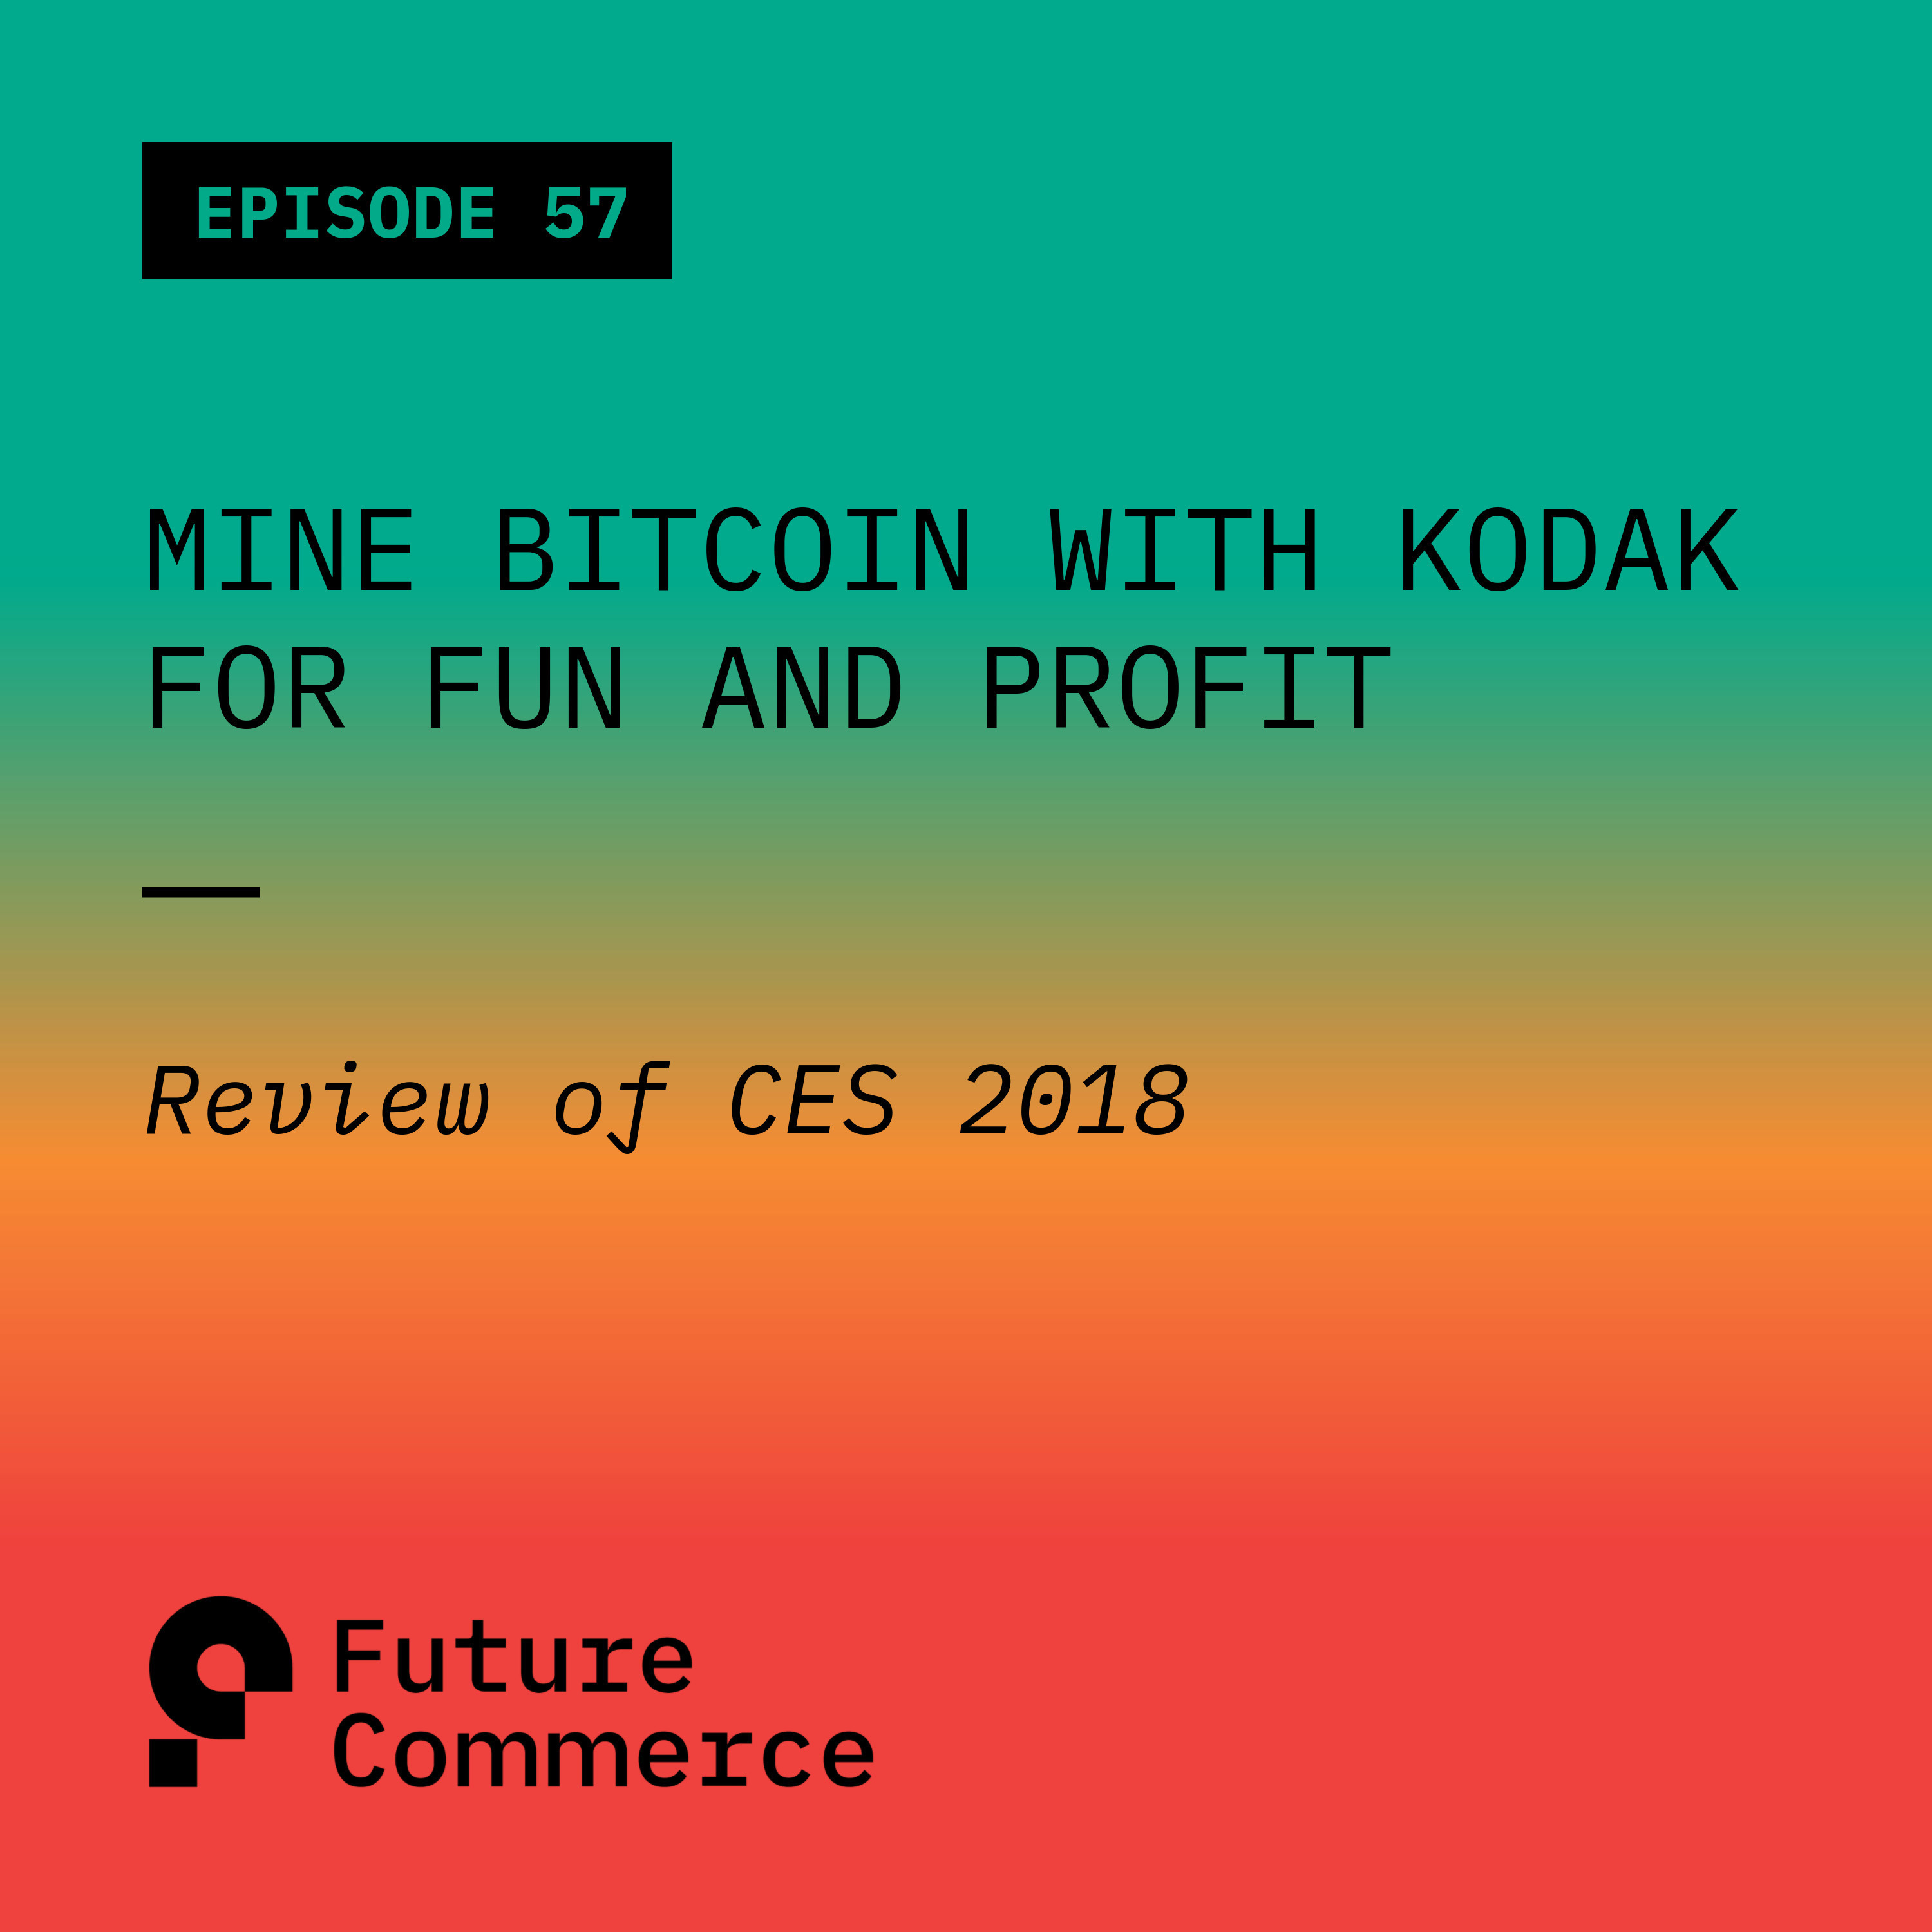 Mine Bitcoin with Kodak for Fun and Profit (CES 2018 Review